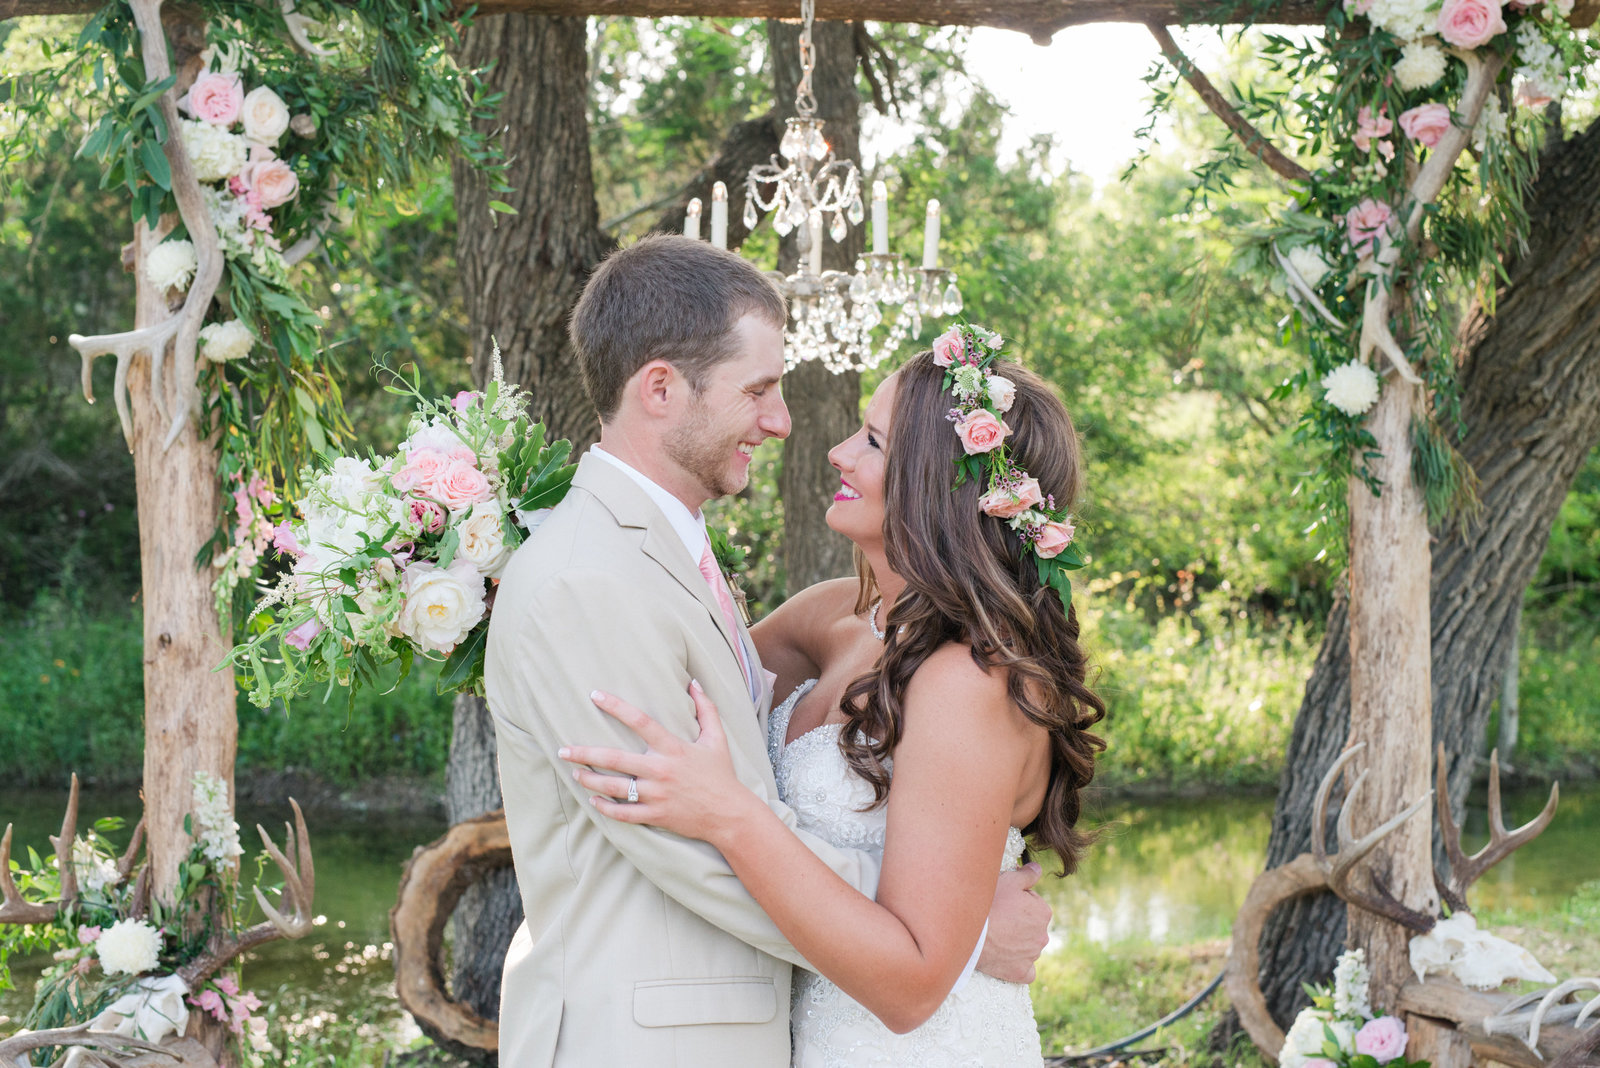 Bride and Groom have antler themed wedding at The Creek Haus in Dripping Springs